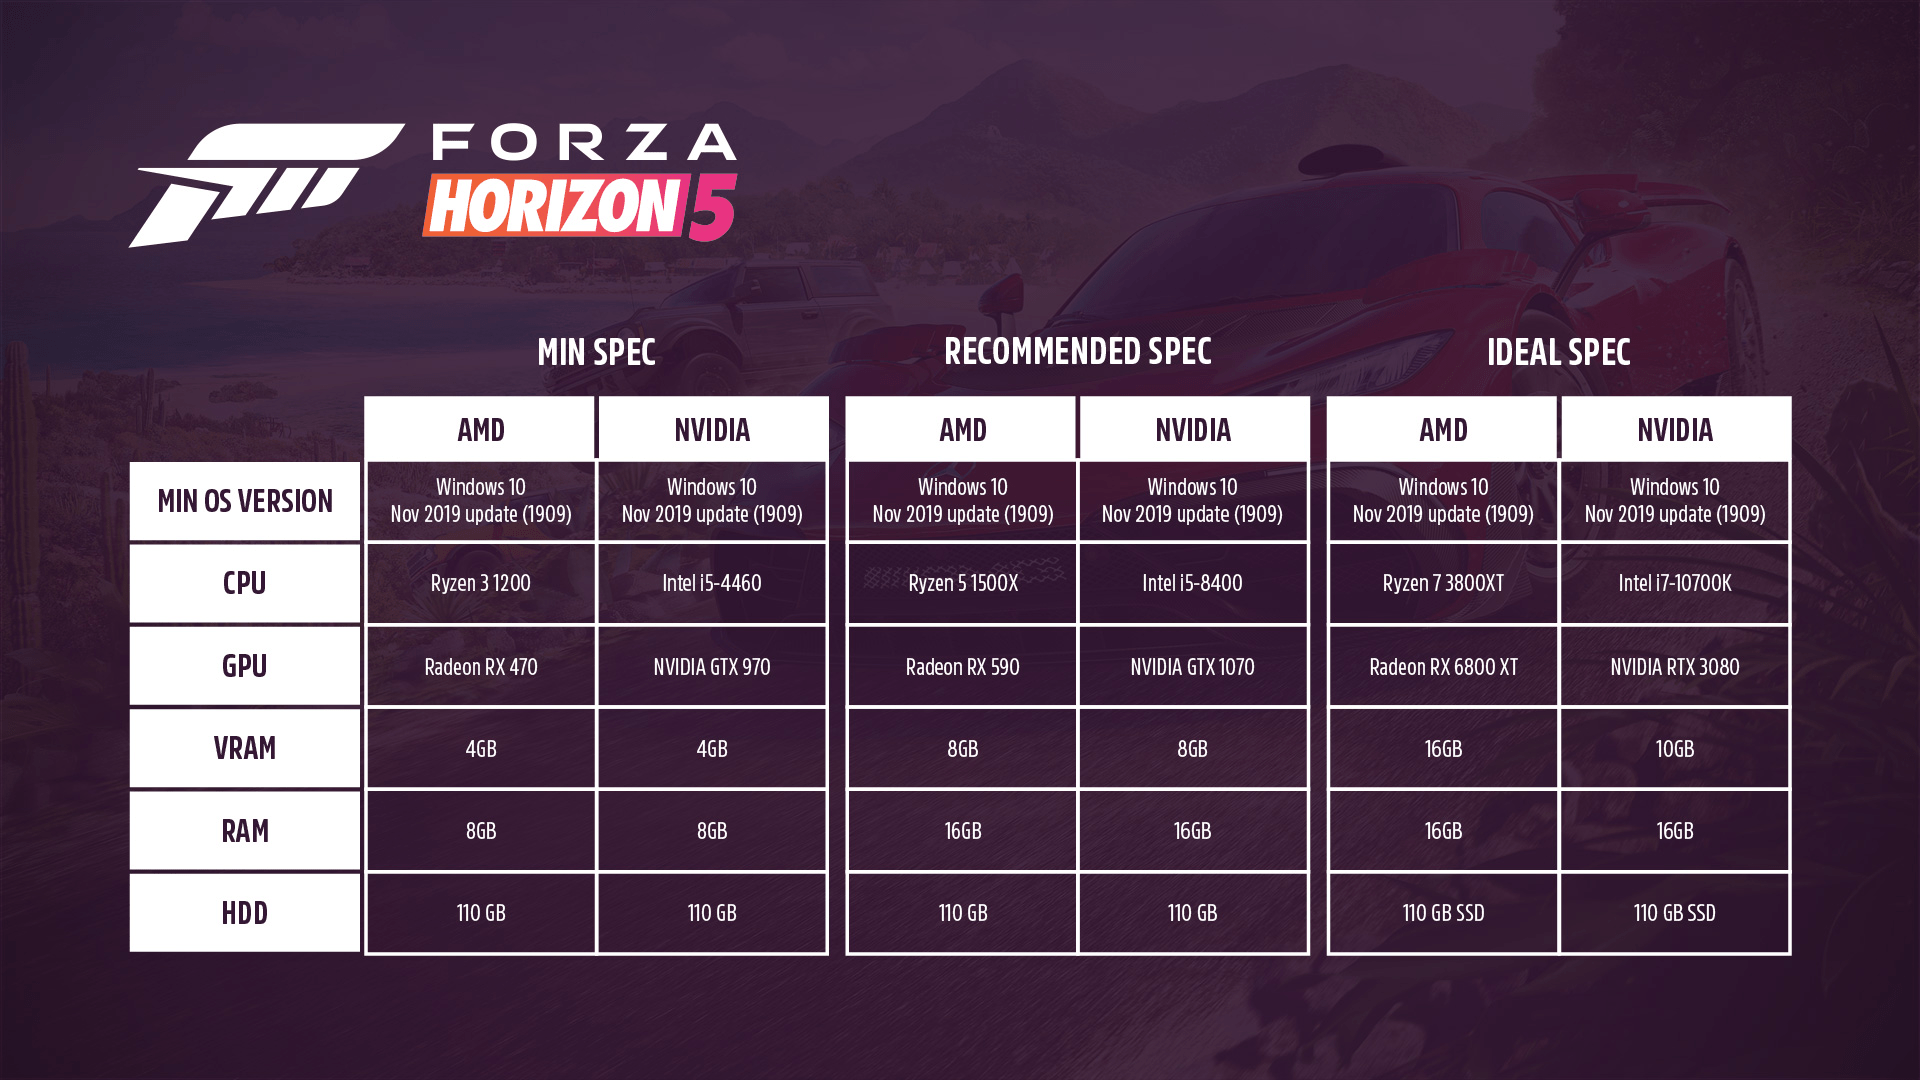 Forza Horizon 5 official system requirements